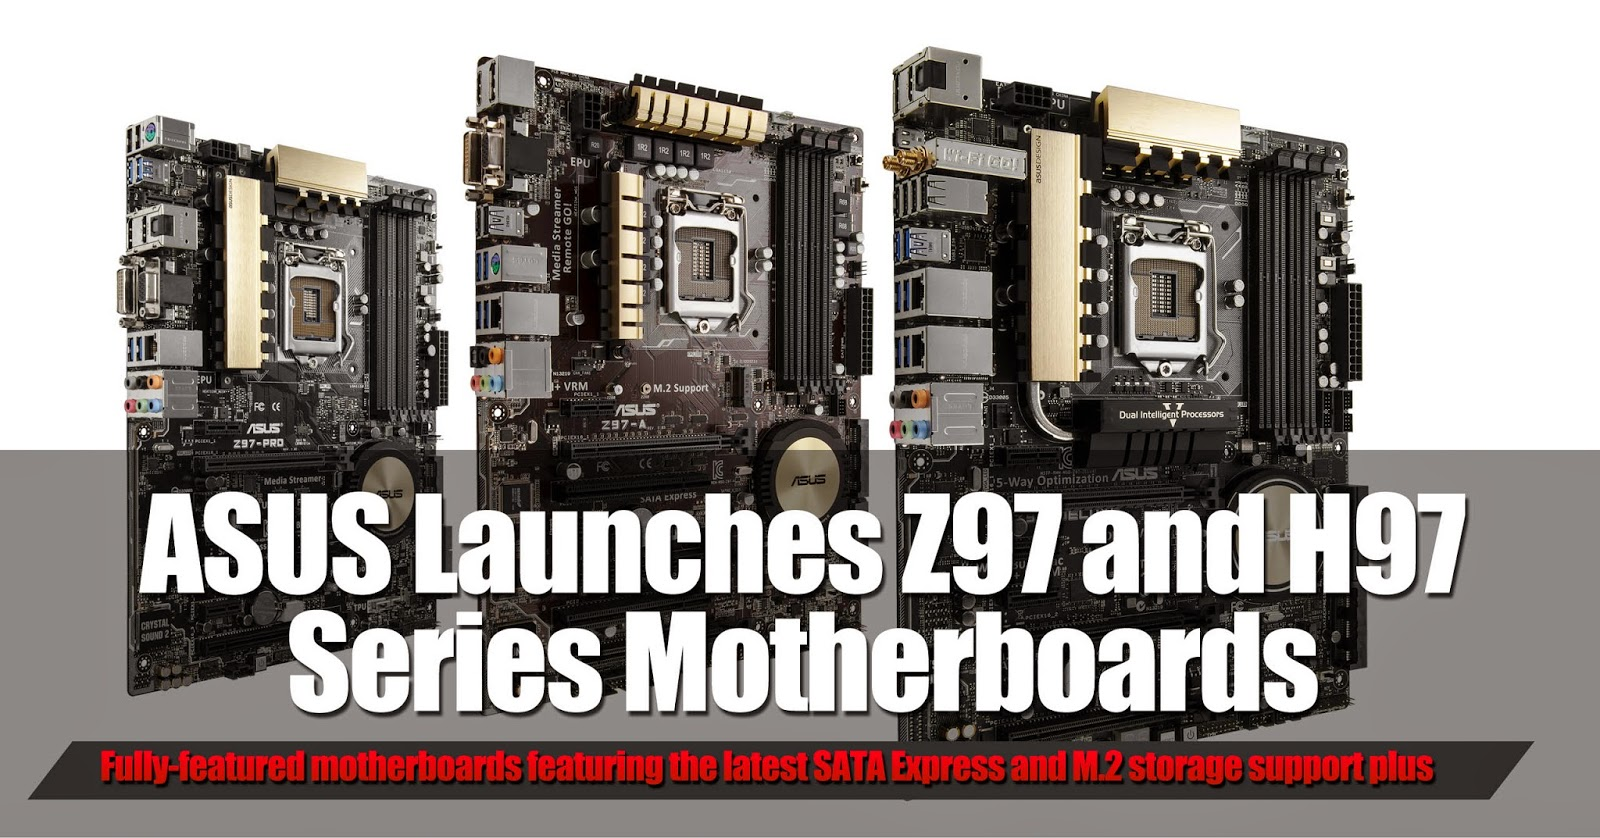 ASUS Launches Z97 and H97 Series Motherboards